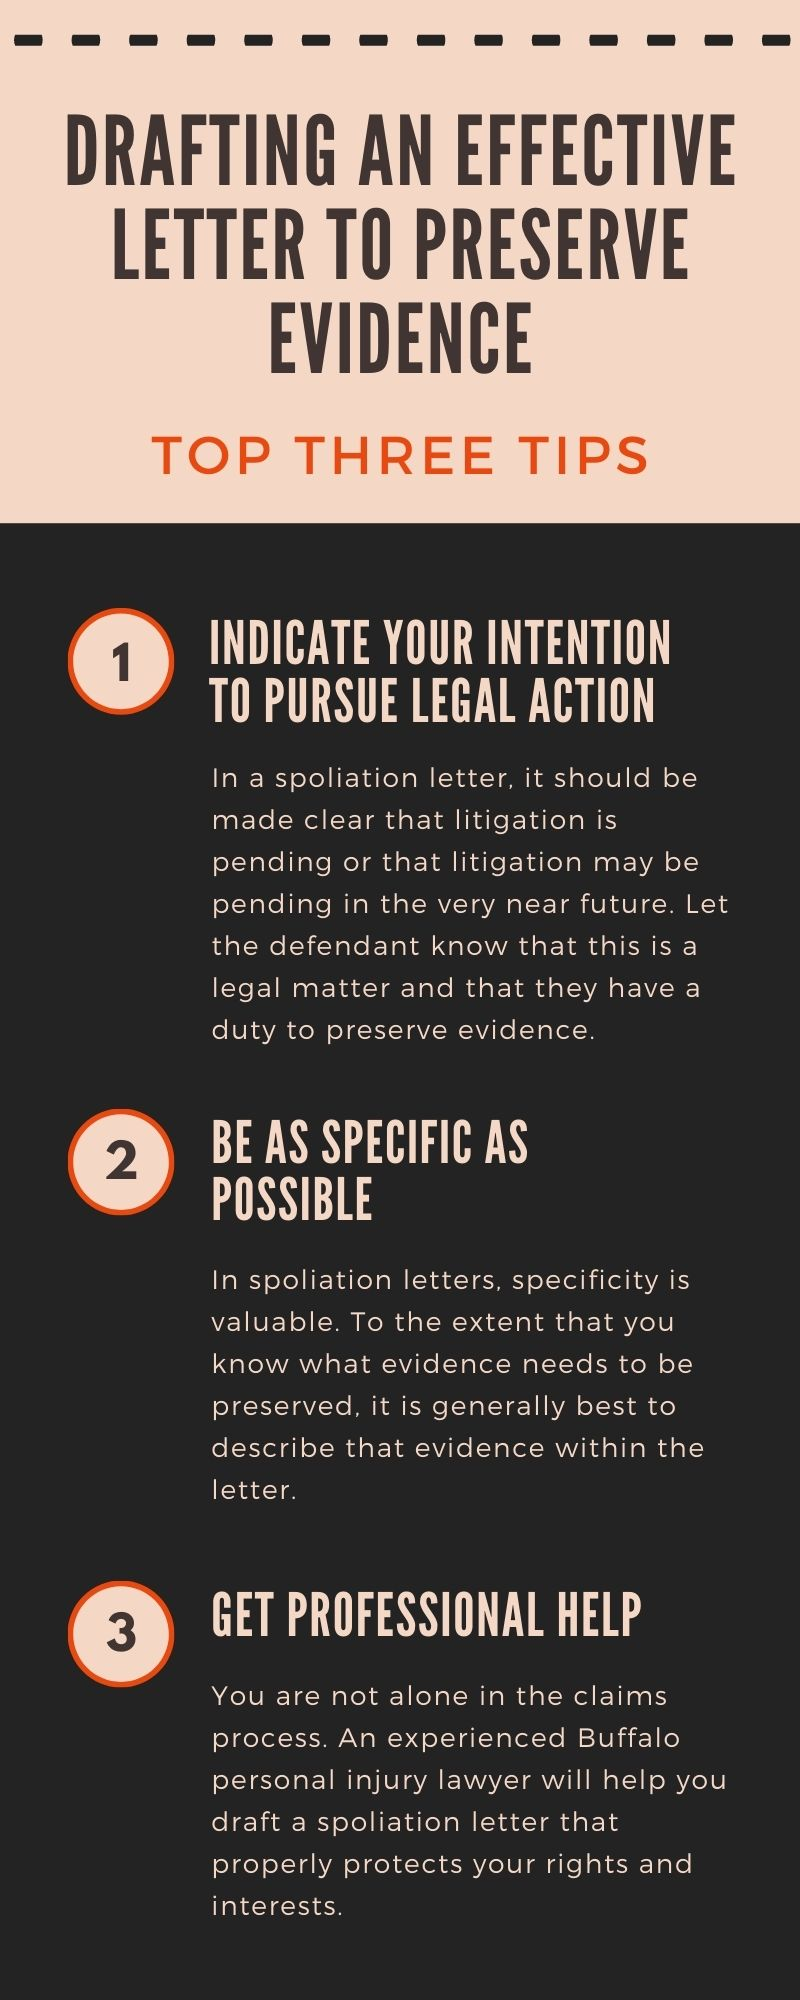 Infographic: Drafting an Effective Letter to Preserve Evidence, Top Three Tips. 1. Indicate Your Intention to Pursue Legal Action 2. Be as Specific as Possible 3. Get Professional Help